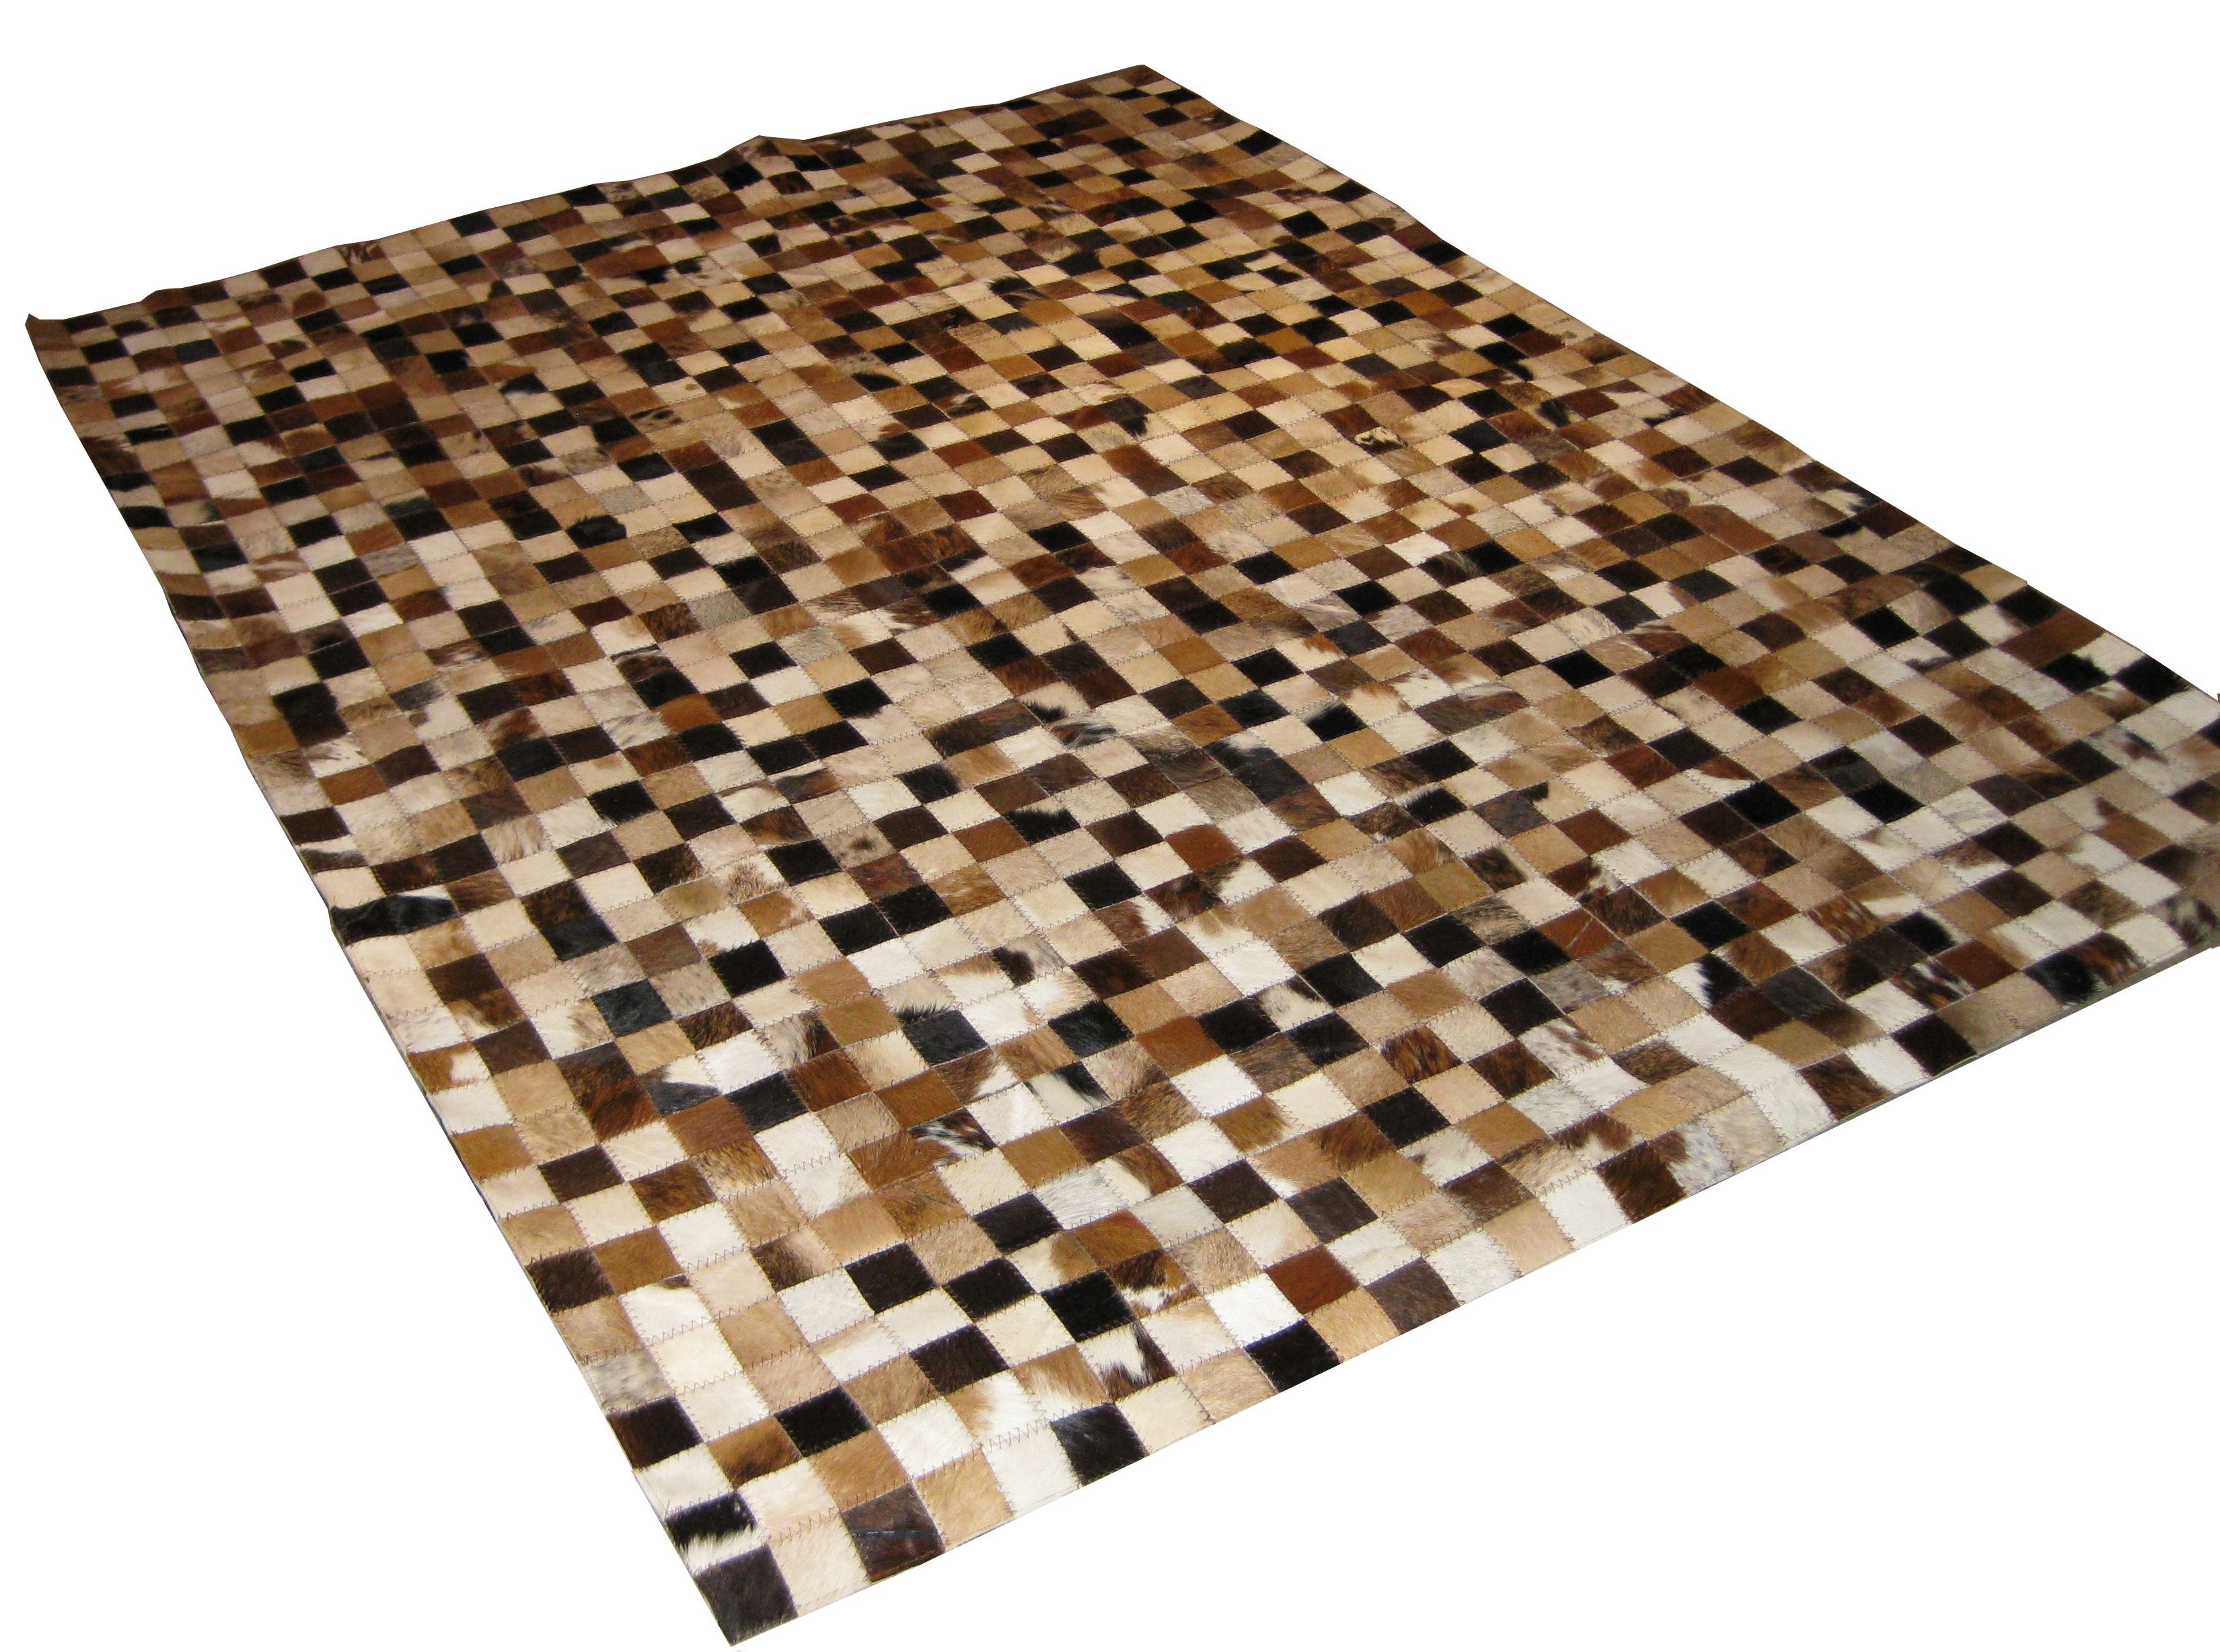 Small Patch Cowhide Carpets Colombia Cowhide Carpets Leather Rug Patchwork Cowhide Rug